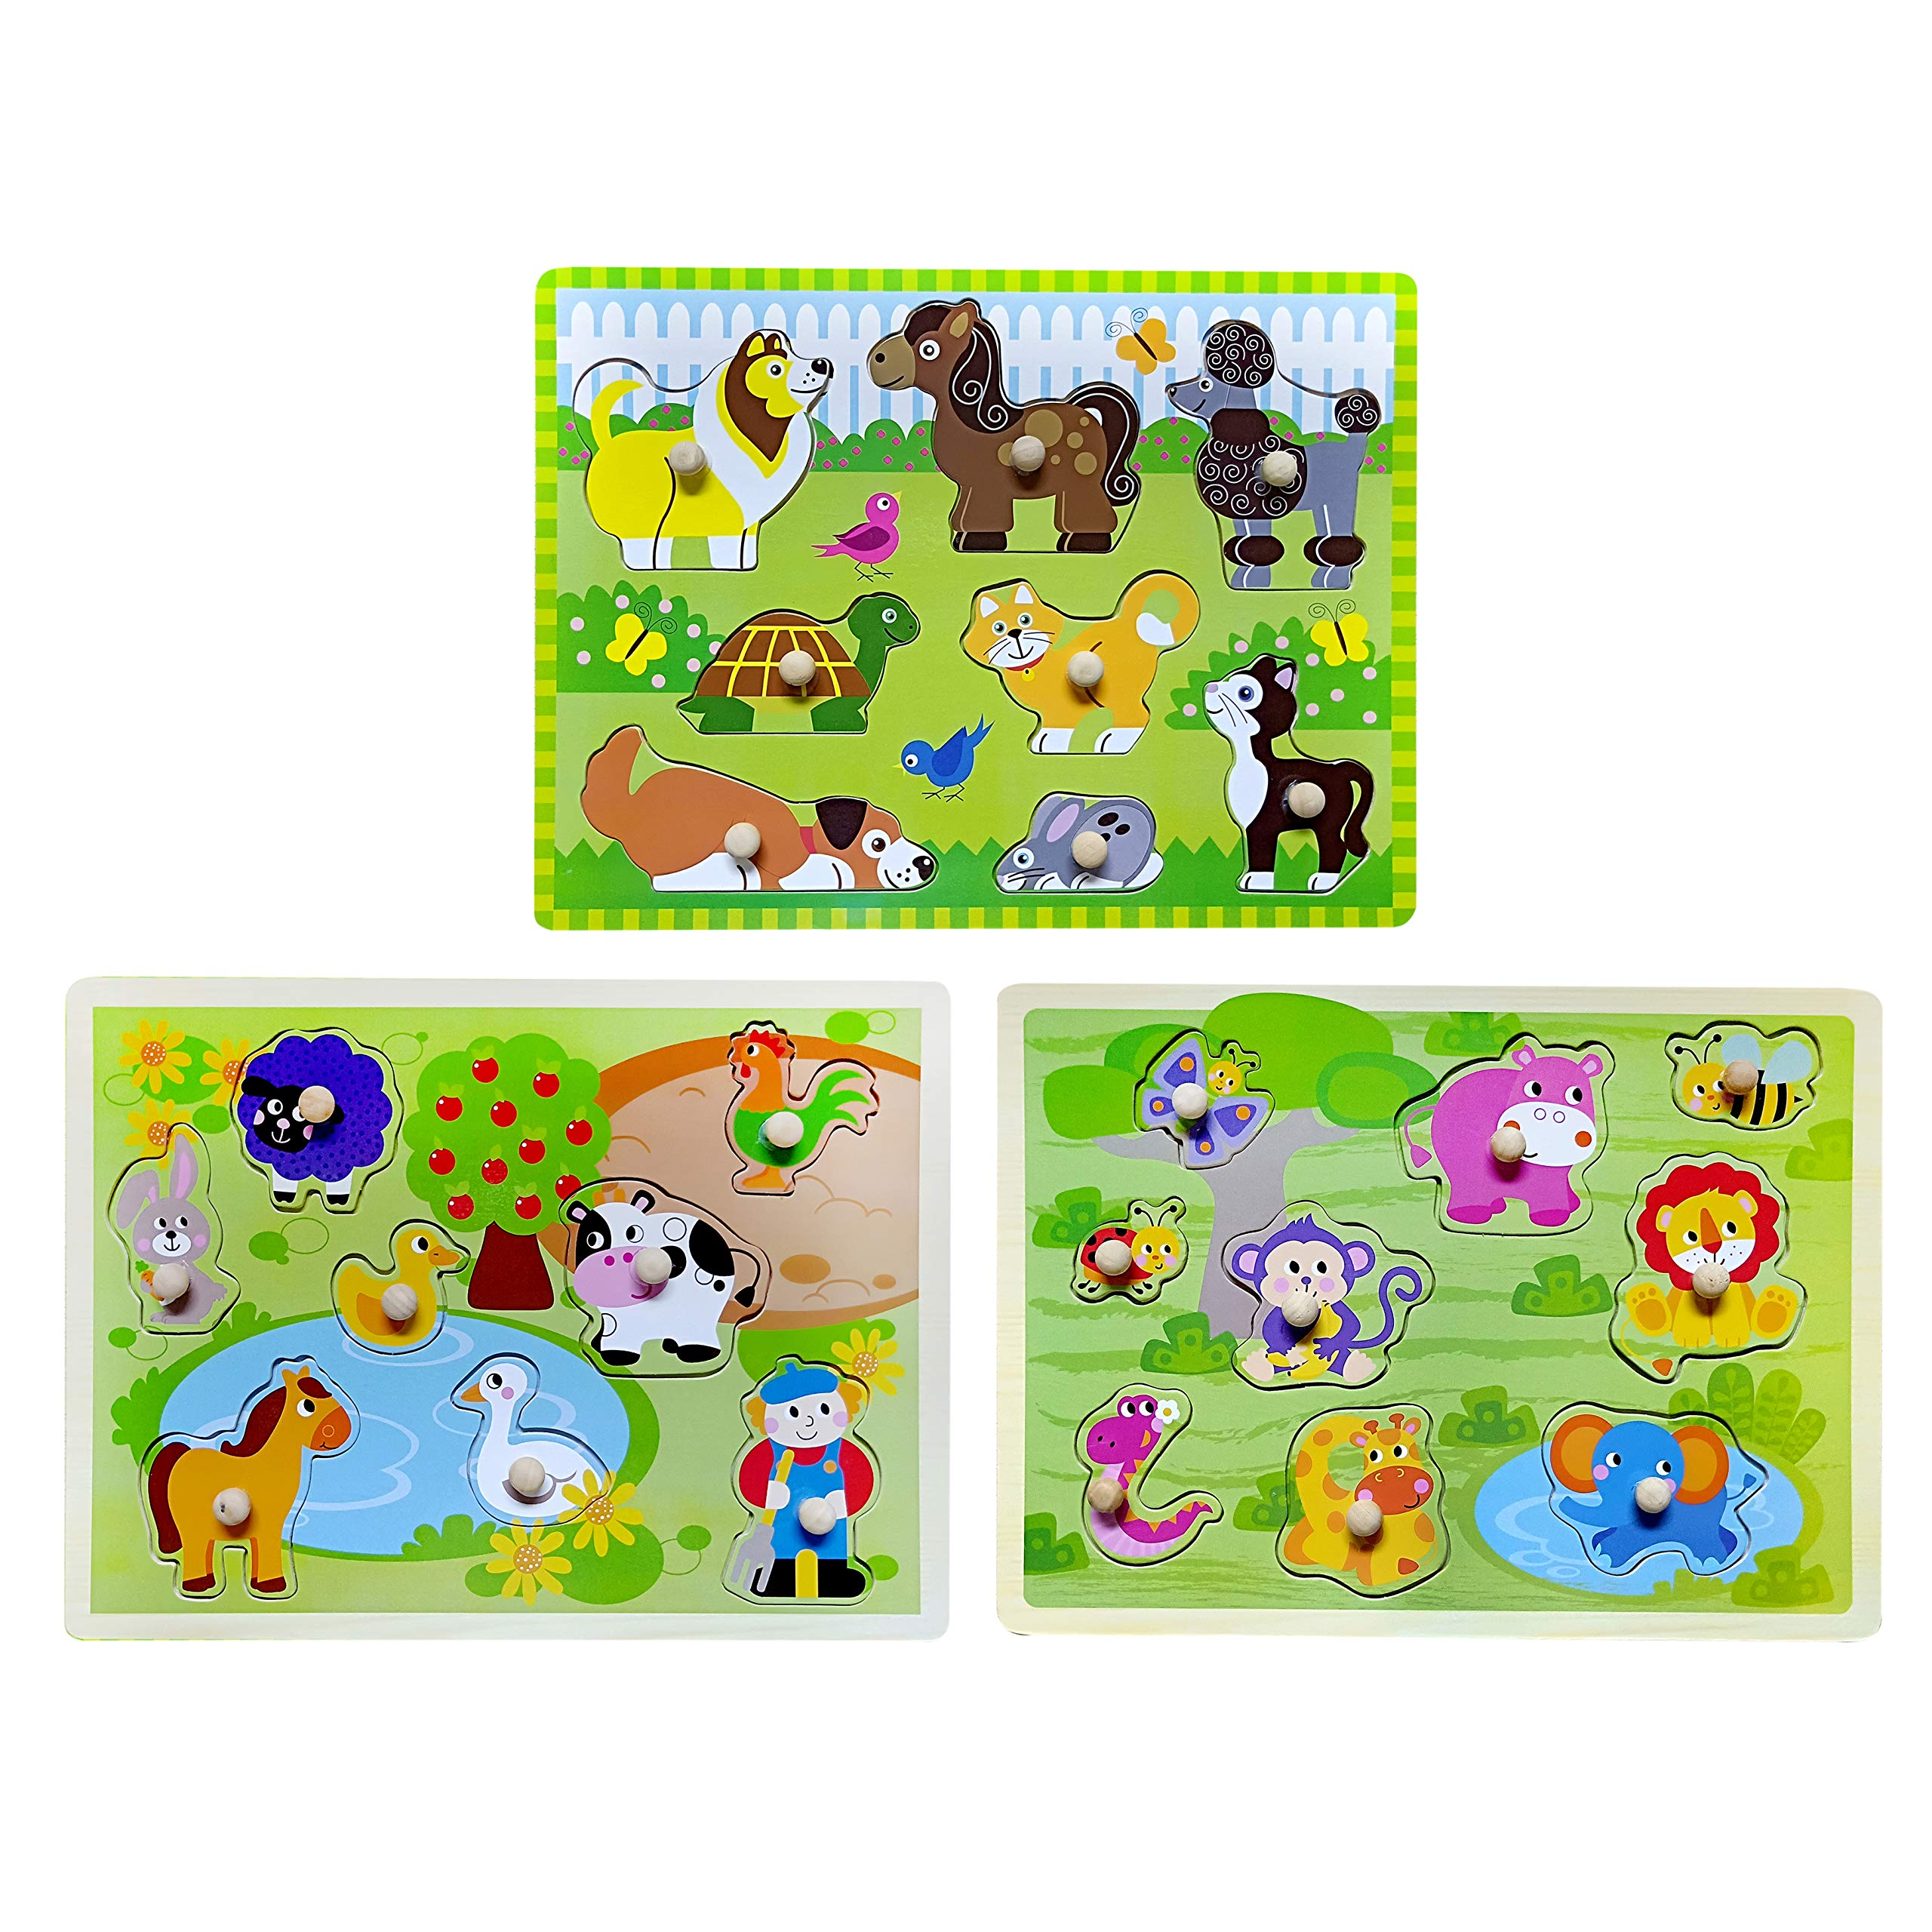 Toddler Puzzles Wooden Peg Puzzle 3 Sets - Farm, Pets and Jungle Animal Illustrations Learning Educational Toys for Toddlers Preschool 2 3 4 5 Years Old by Wallxin